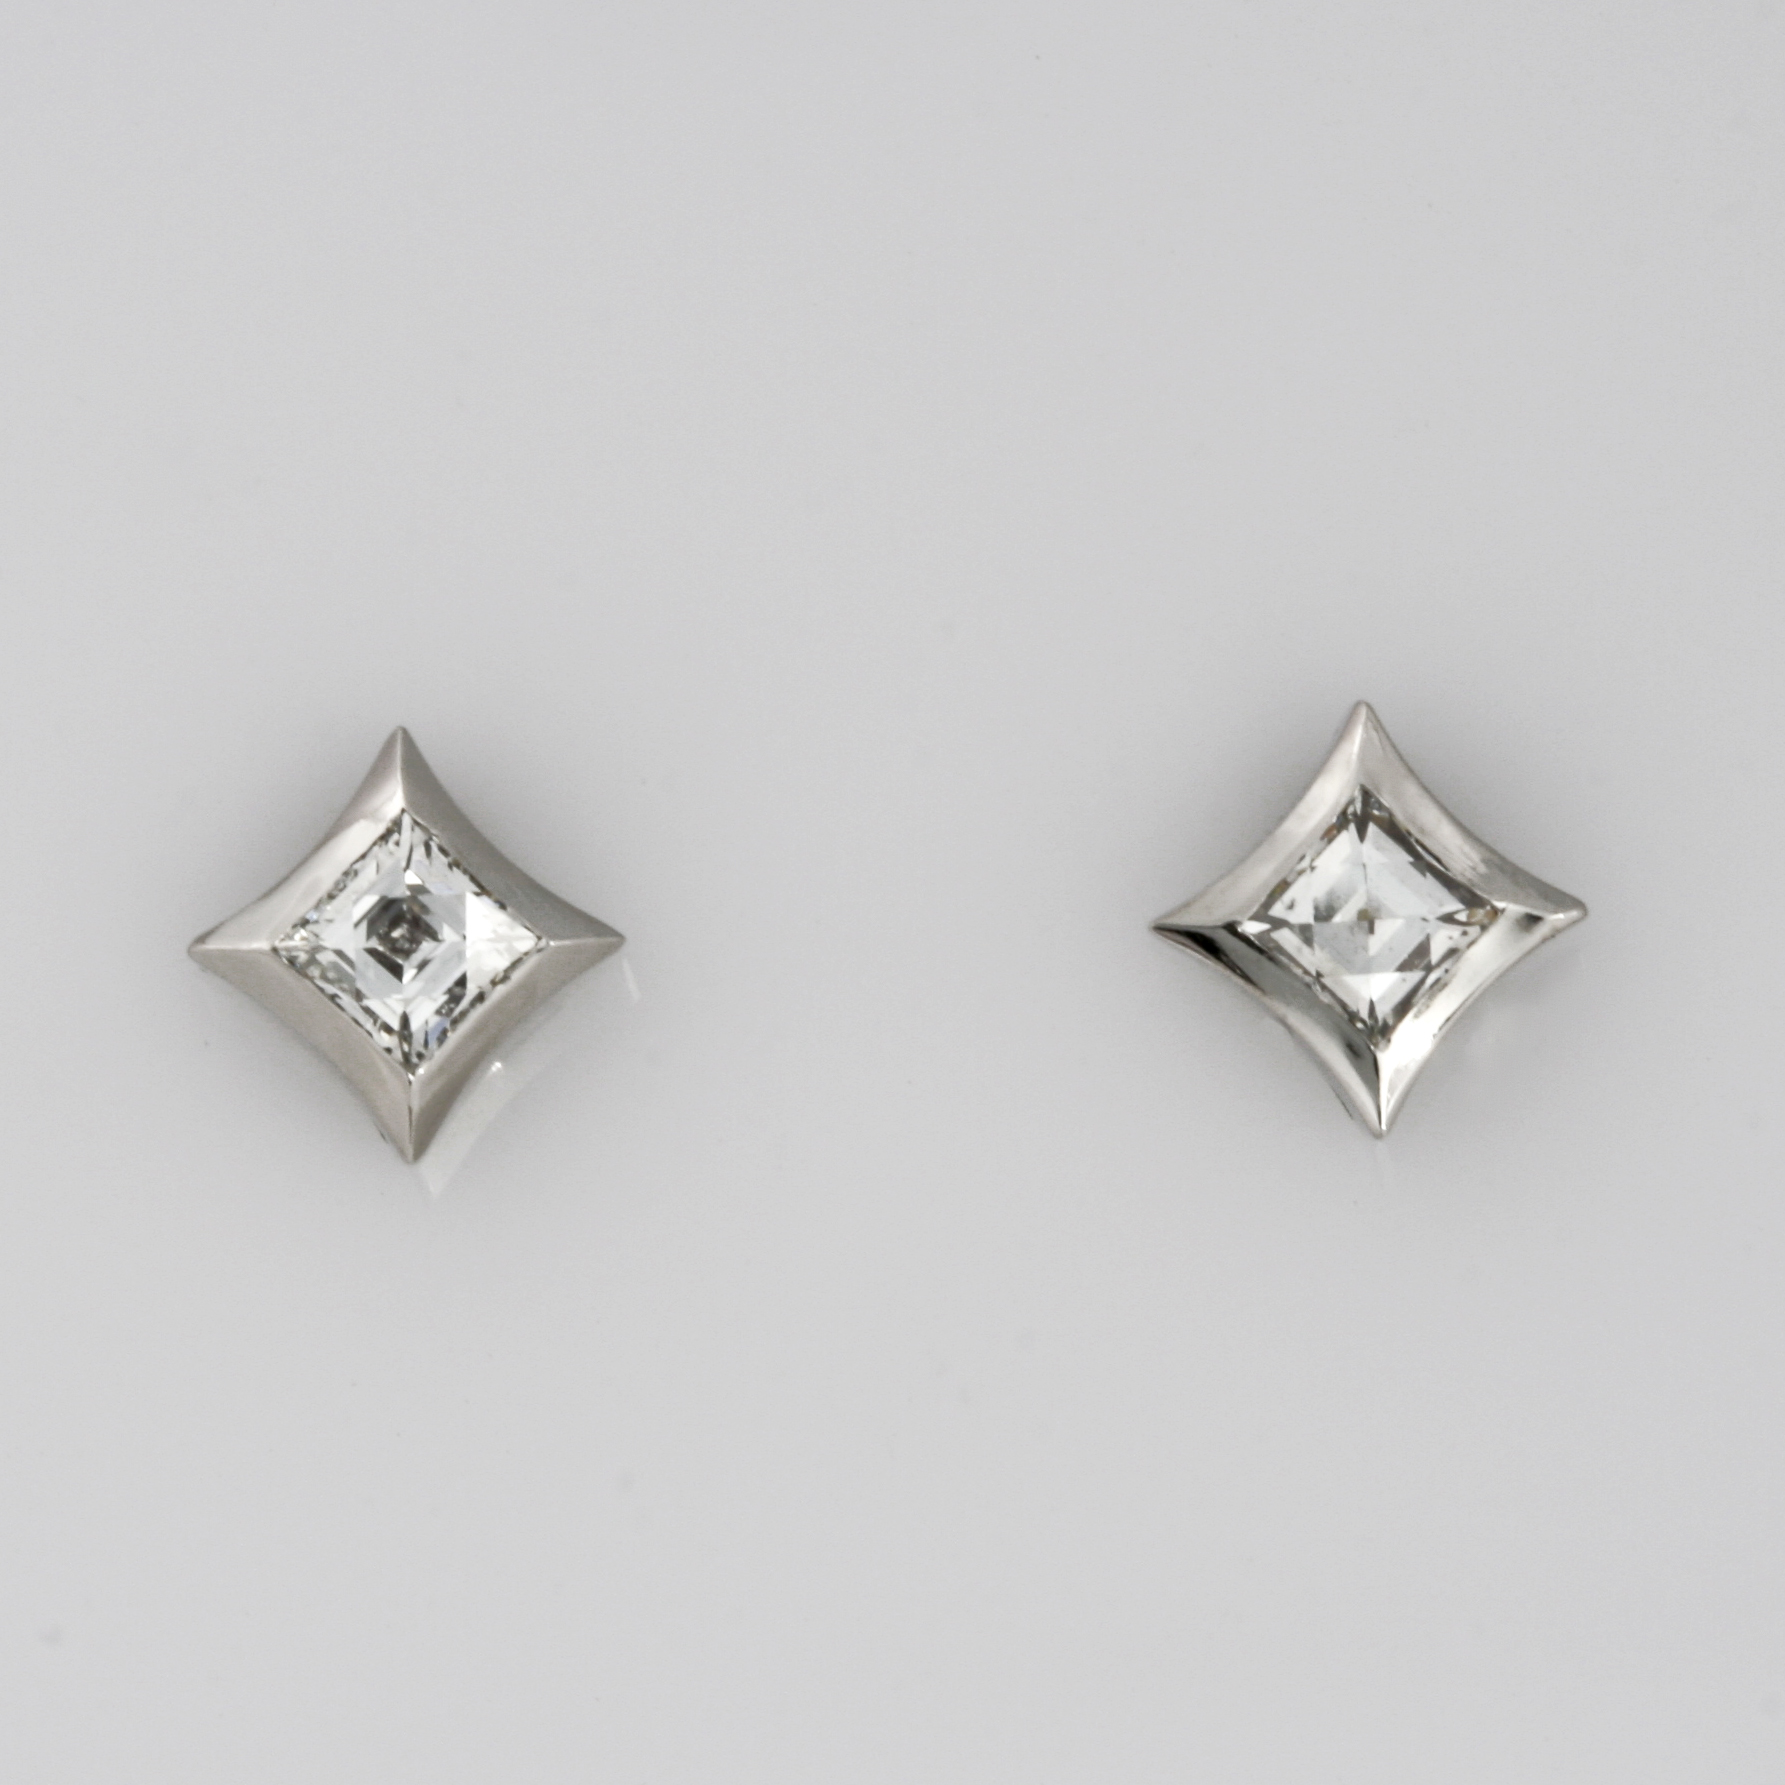 Handmade ladies palladium and 18ct white gold 'Tycoon' cut diamond stud earrings